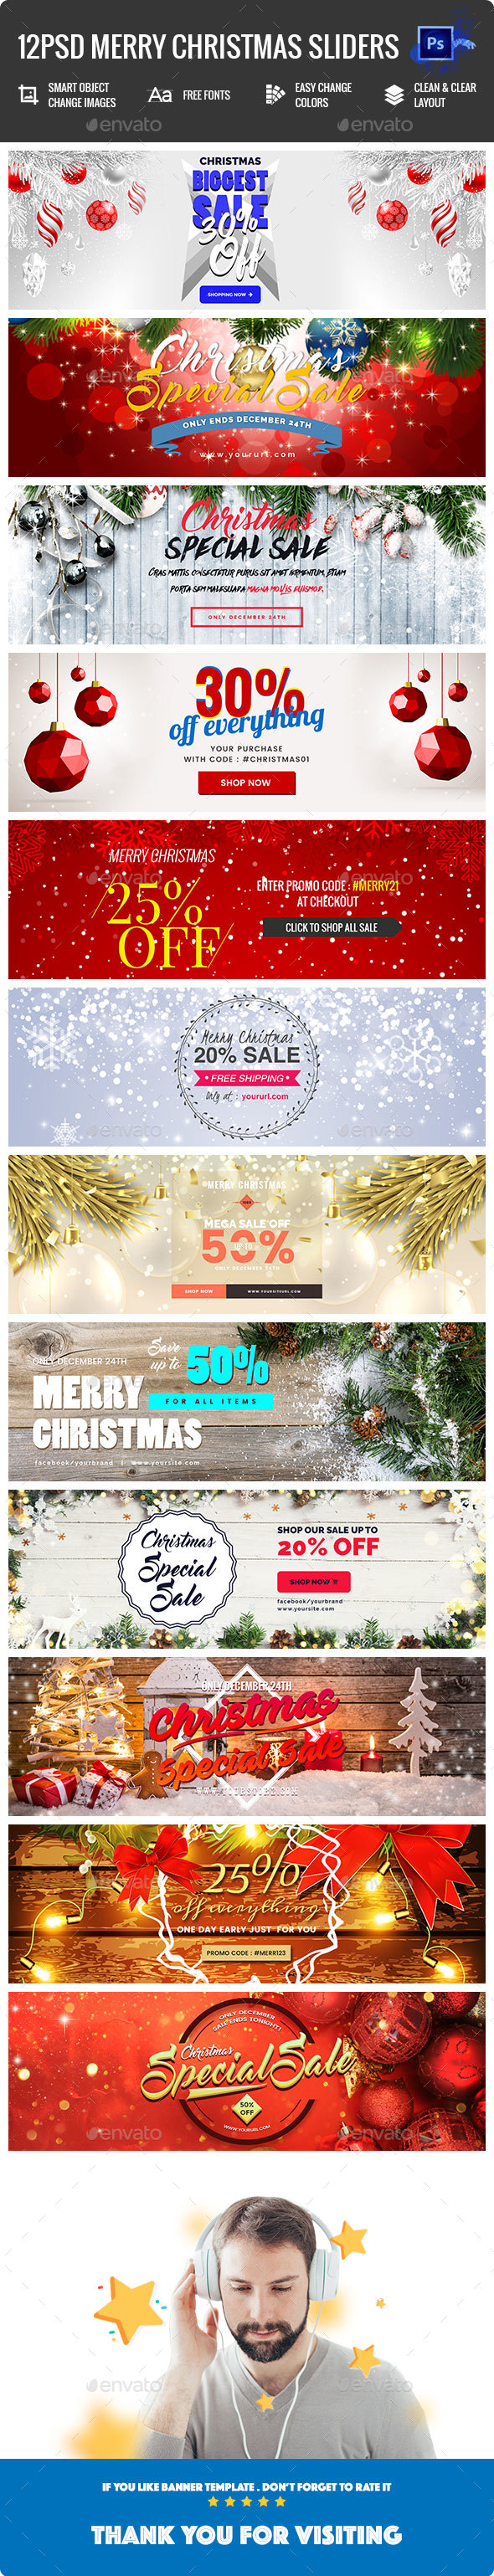 Merry Christmas Sliders - 12PSD - Sliders & Features Web Elements